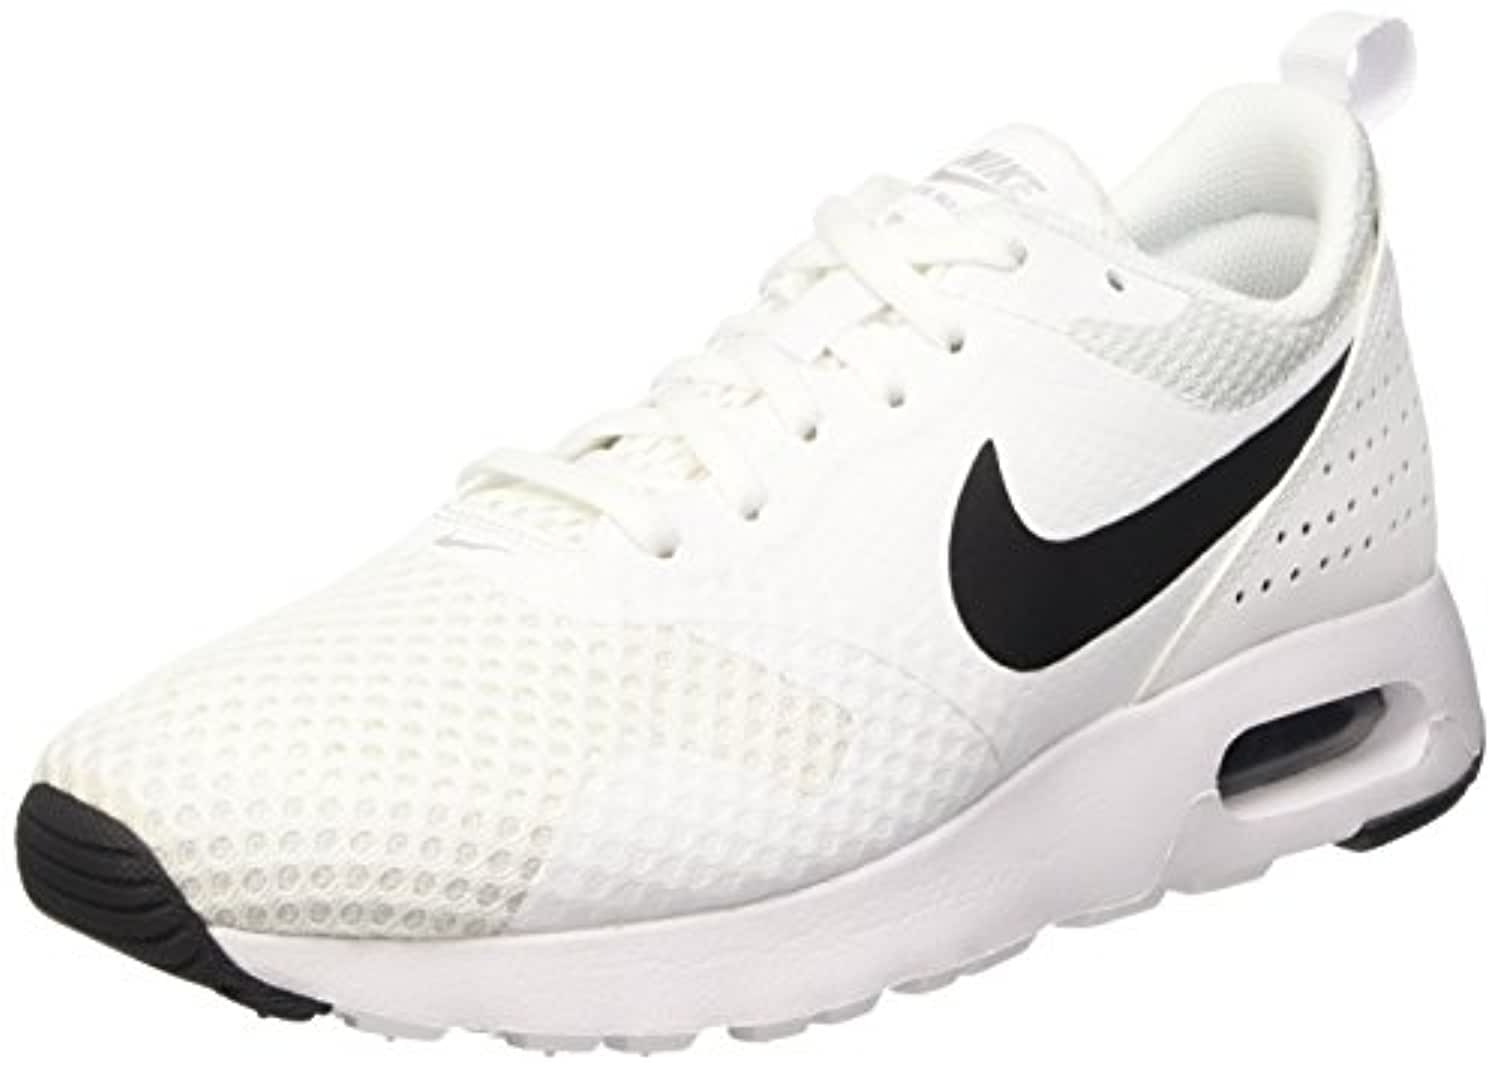 Nike Boys' Air Max Tavas Br (Gs) Gymnastics Shoes, Bianco (White/Black-White), 3 UK